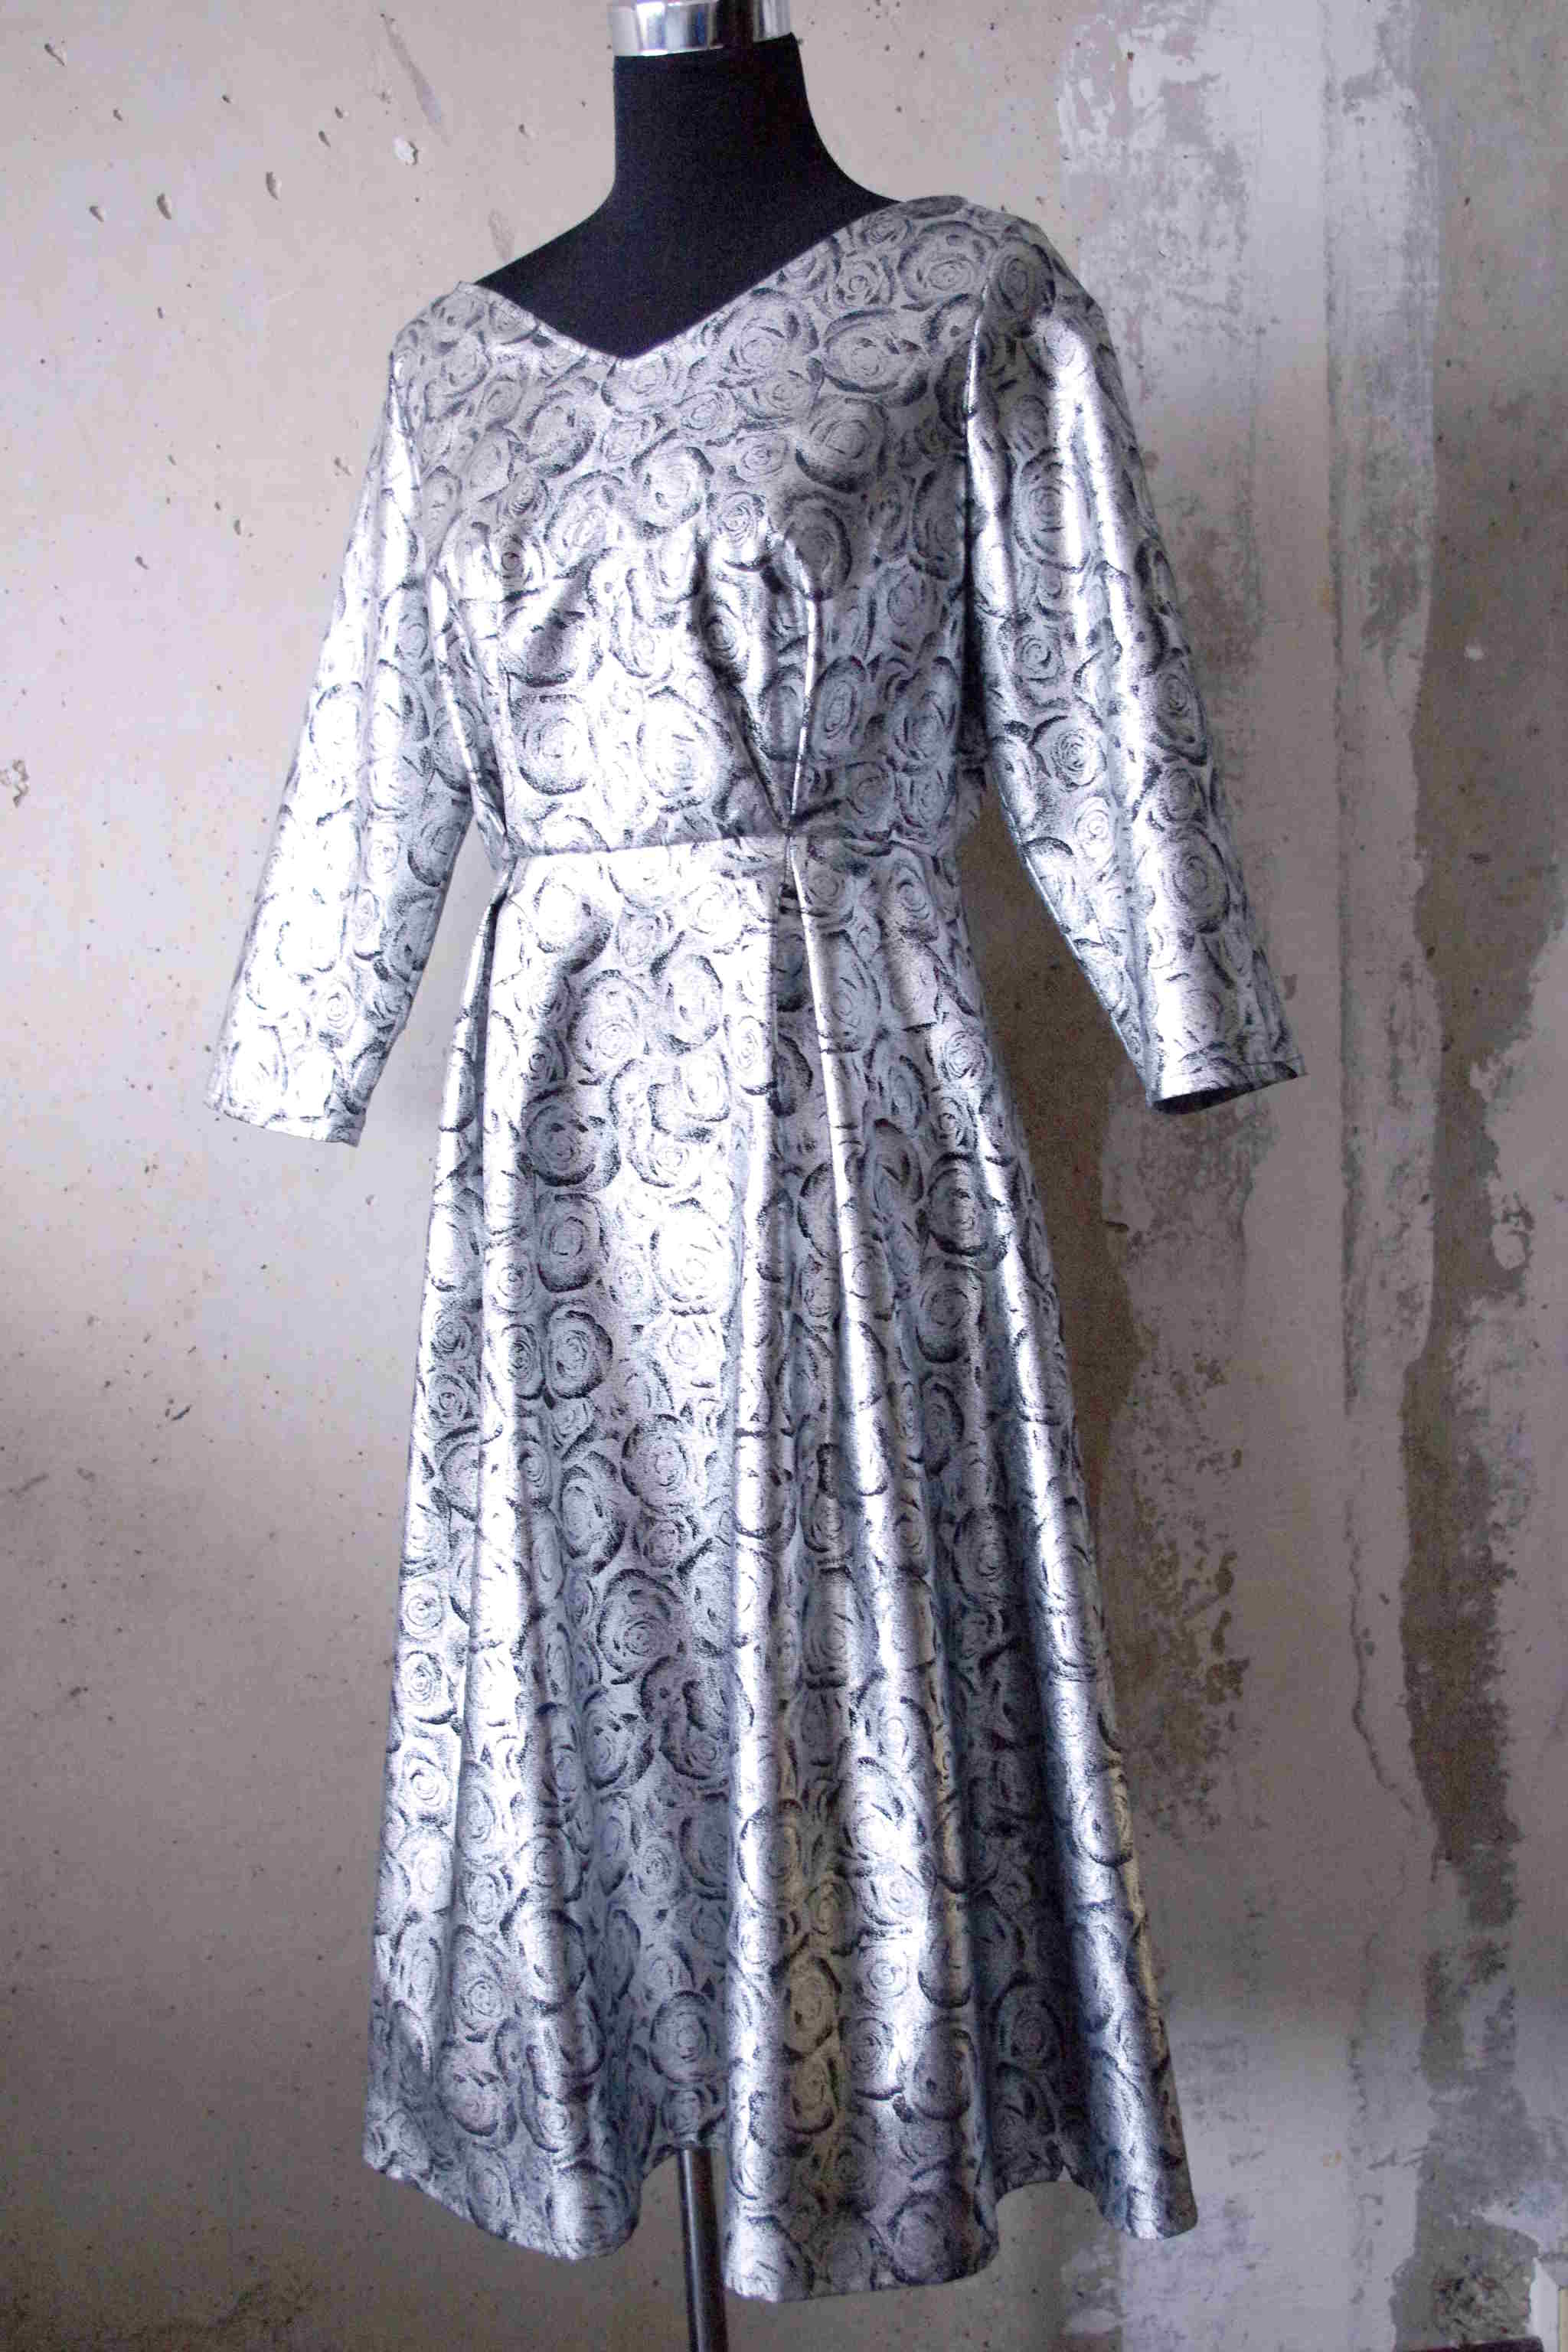 Kleidung aus Metallic-Stoffen – clothing made of metallic fabrics